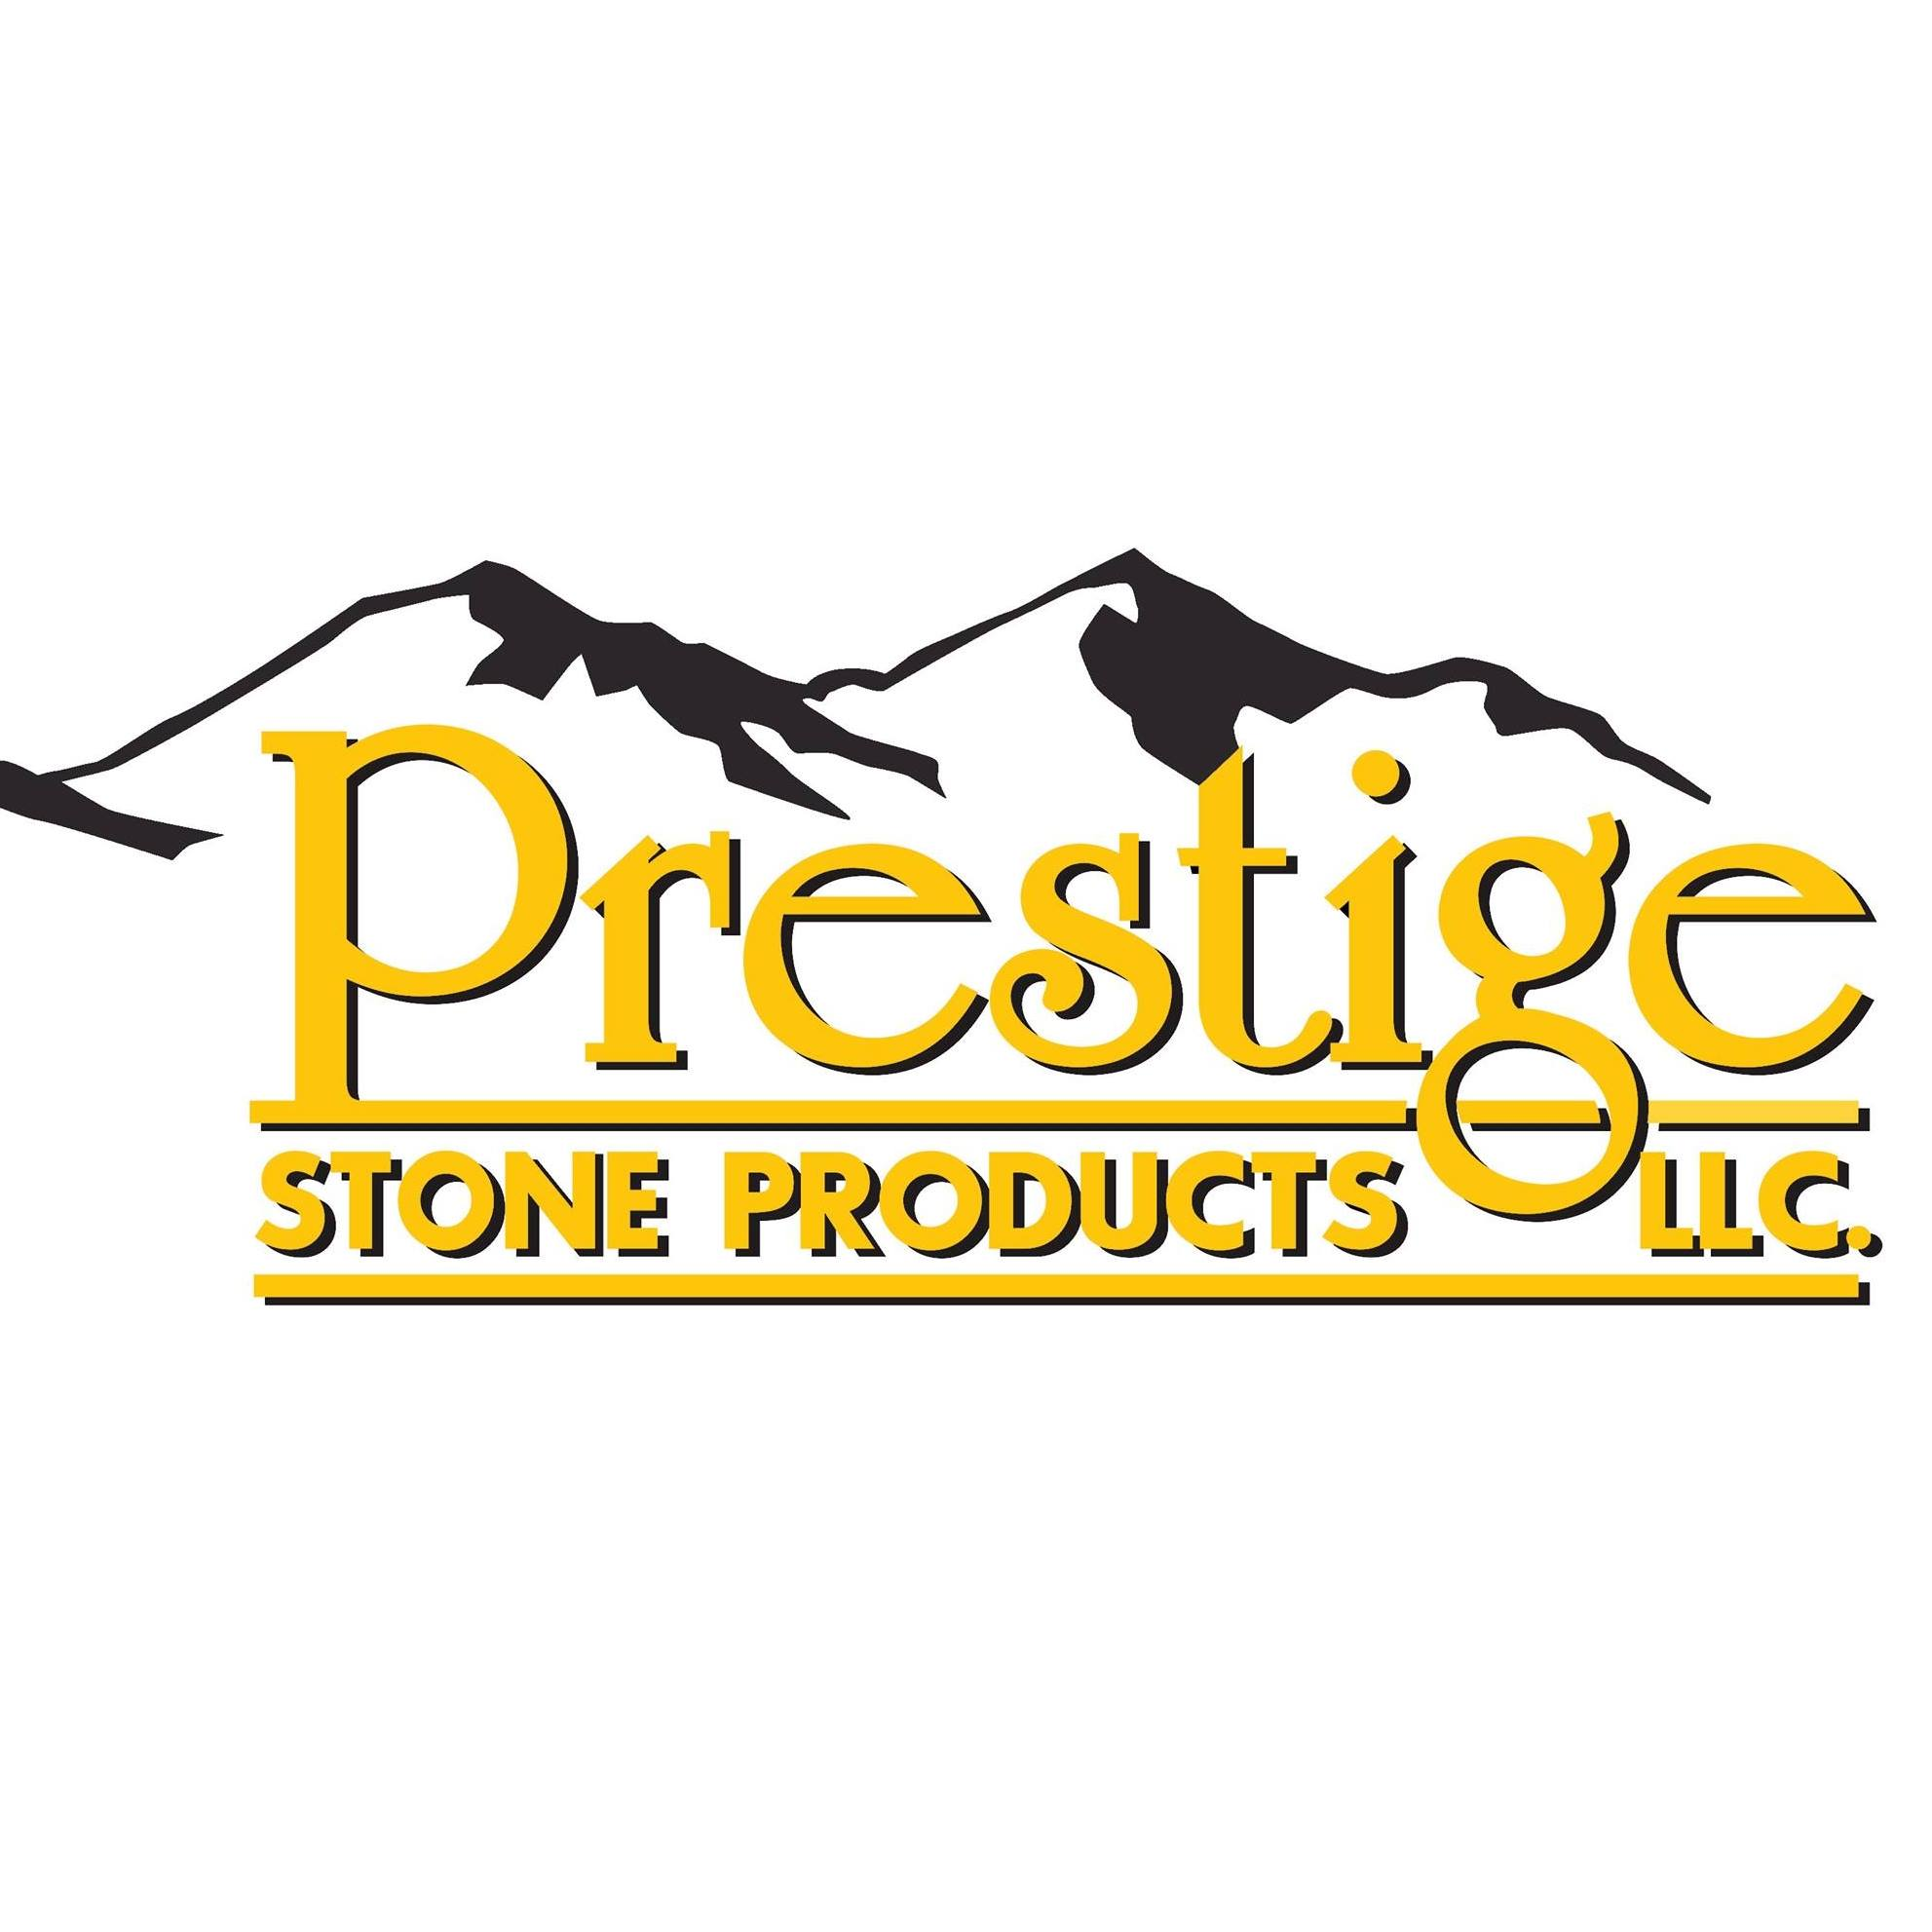 Prestige Stone Products LLC